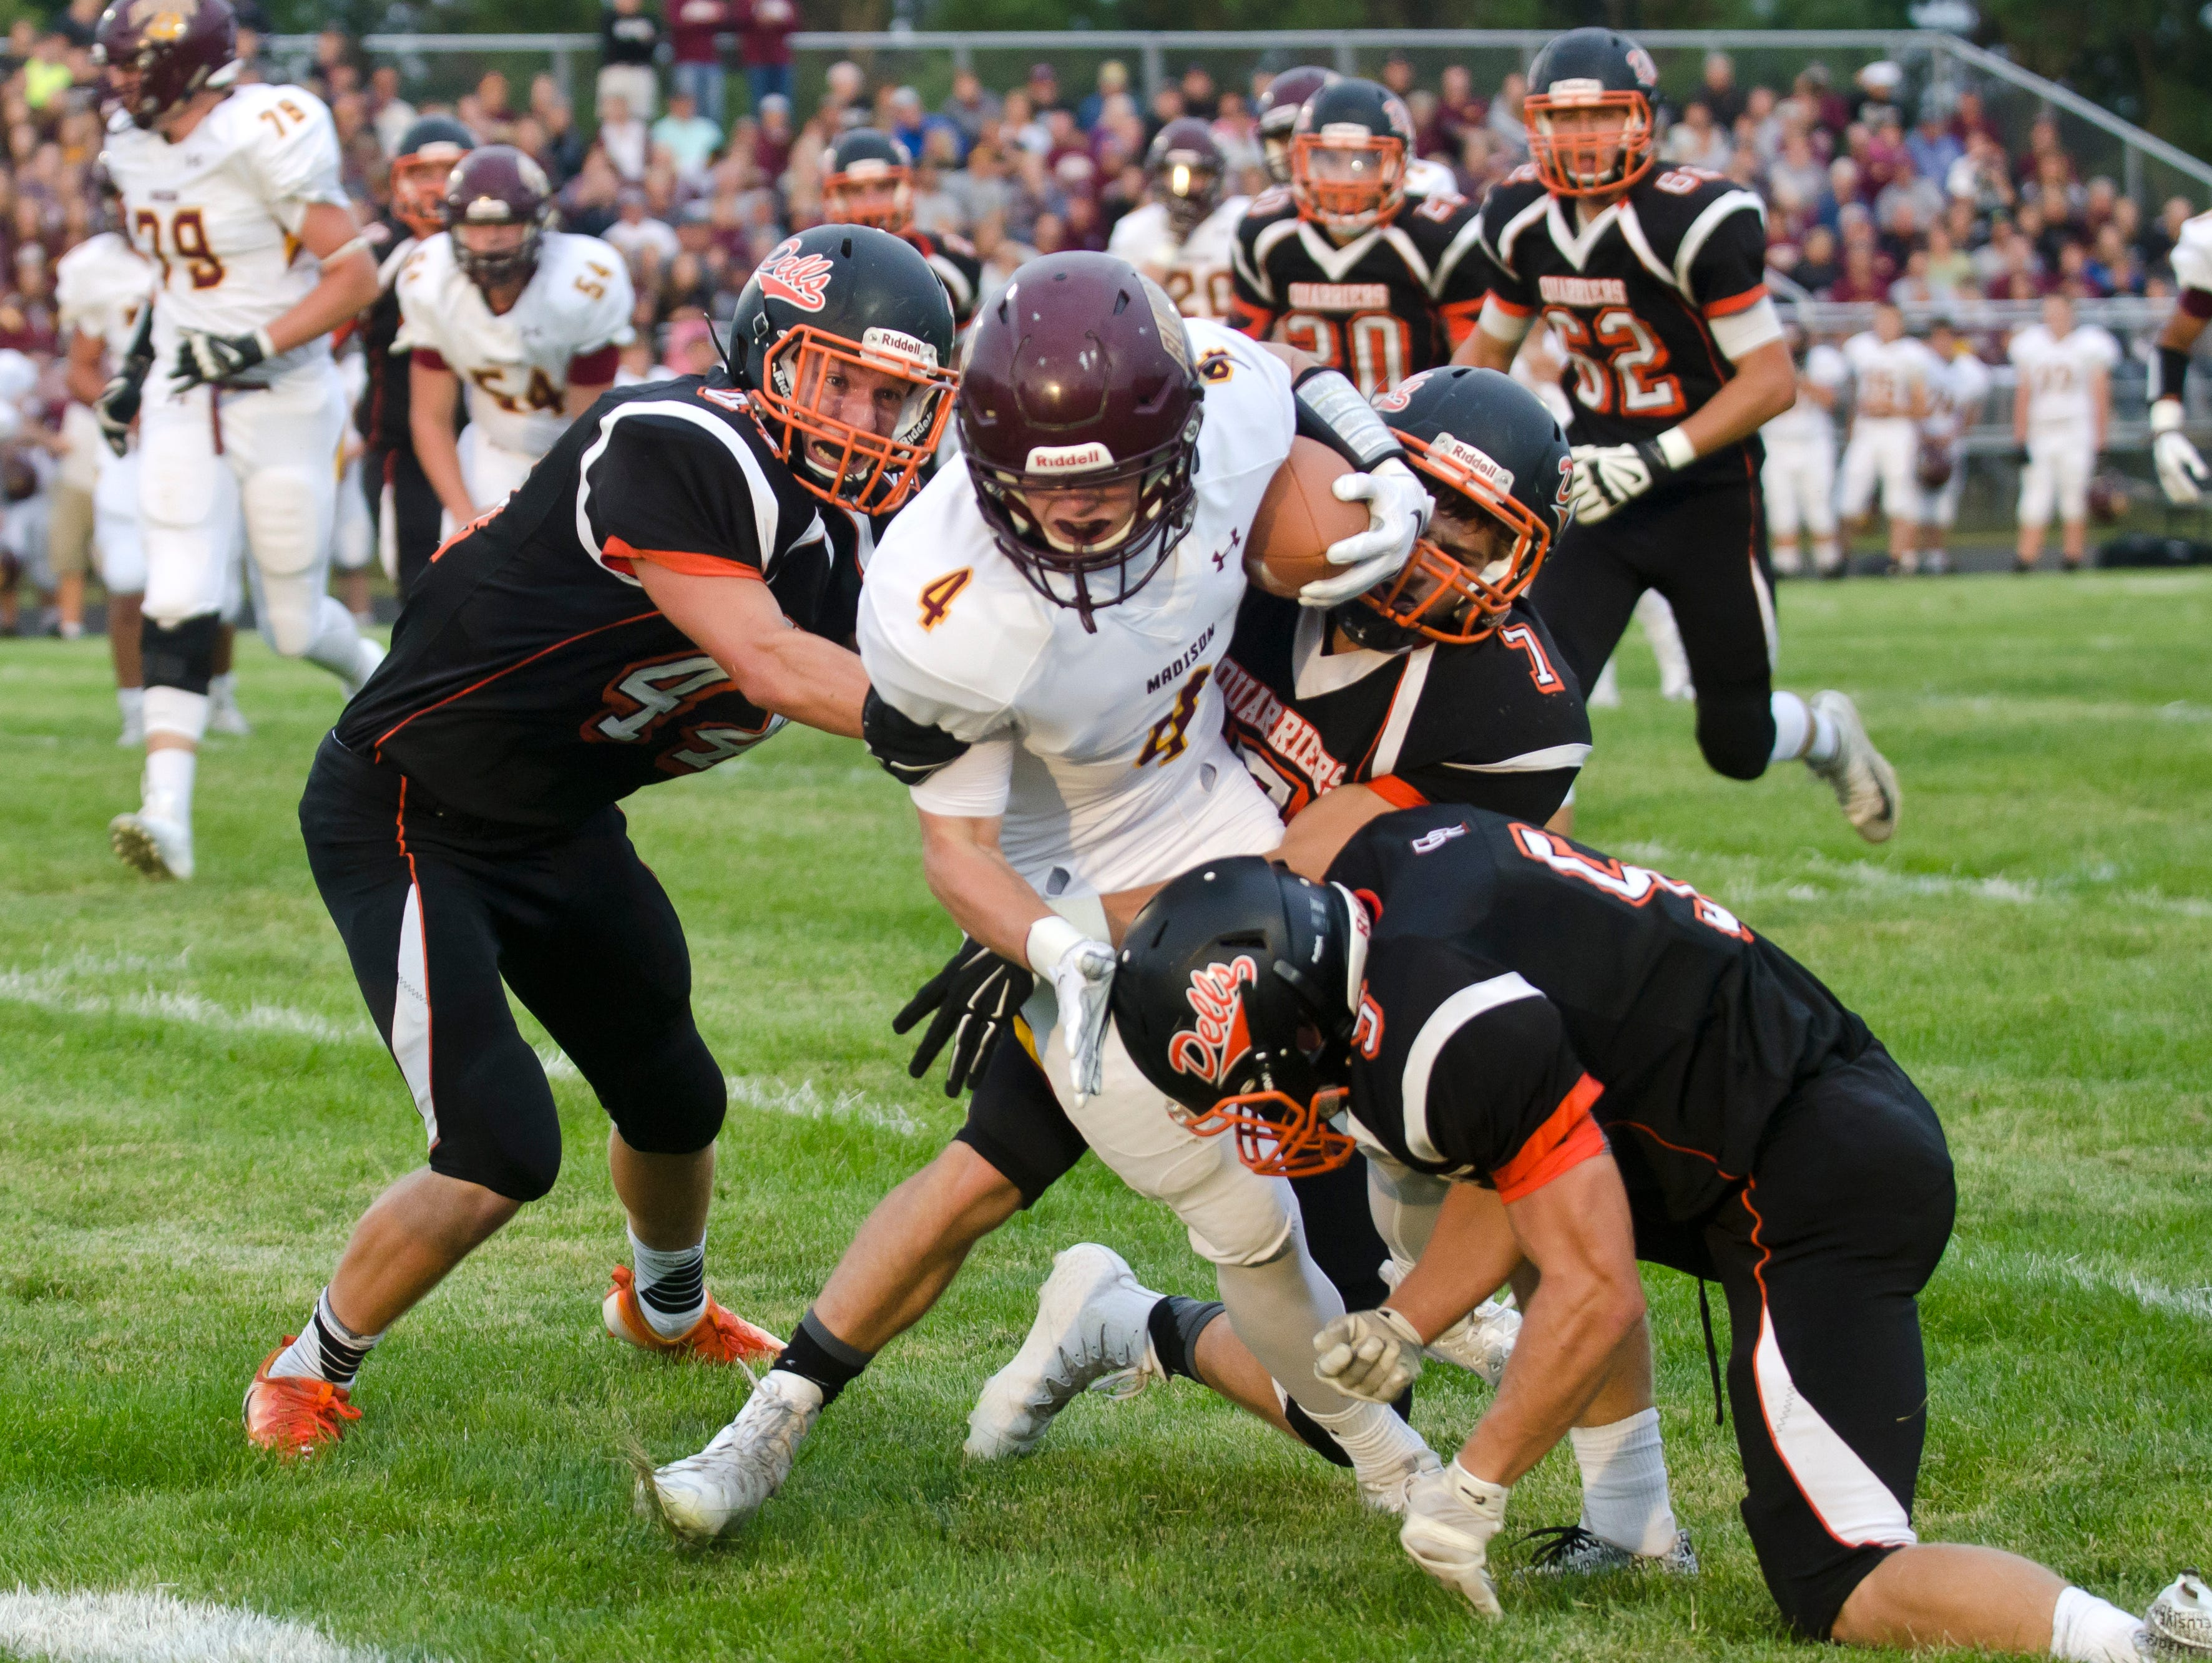 Madison's Mason Leighton is gang-tackled by Dell Rapids' Tanner Heim (44), Ross Wiebenga (7) and Anthony Miller (5) Friday, Aug. 26, at Dell Rapids.